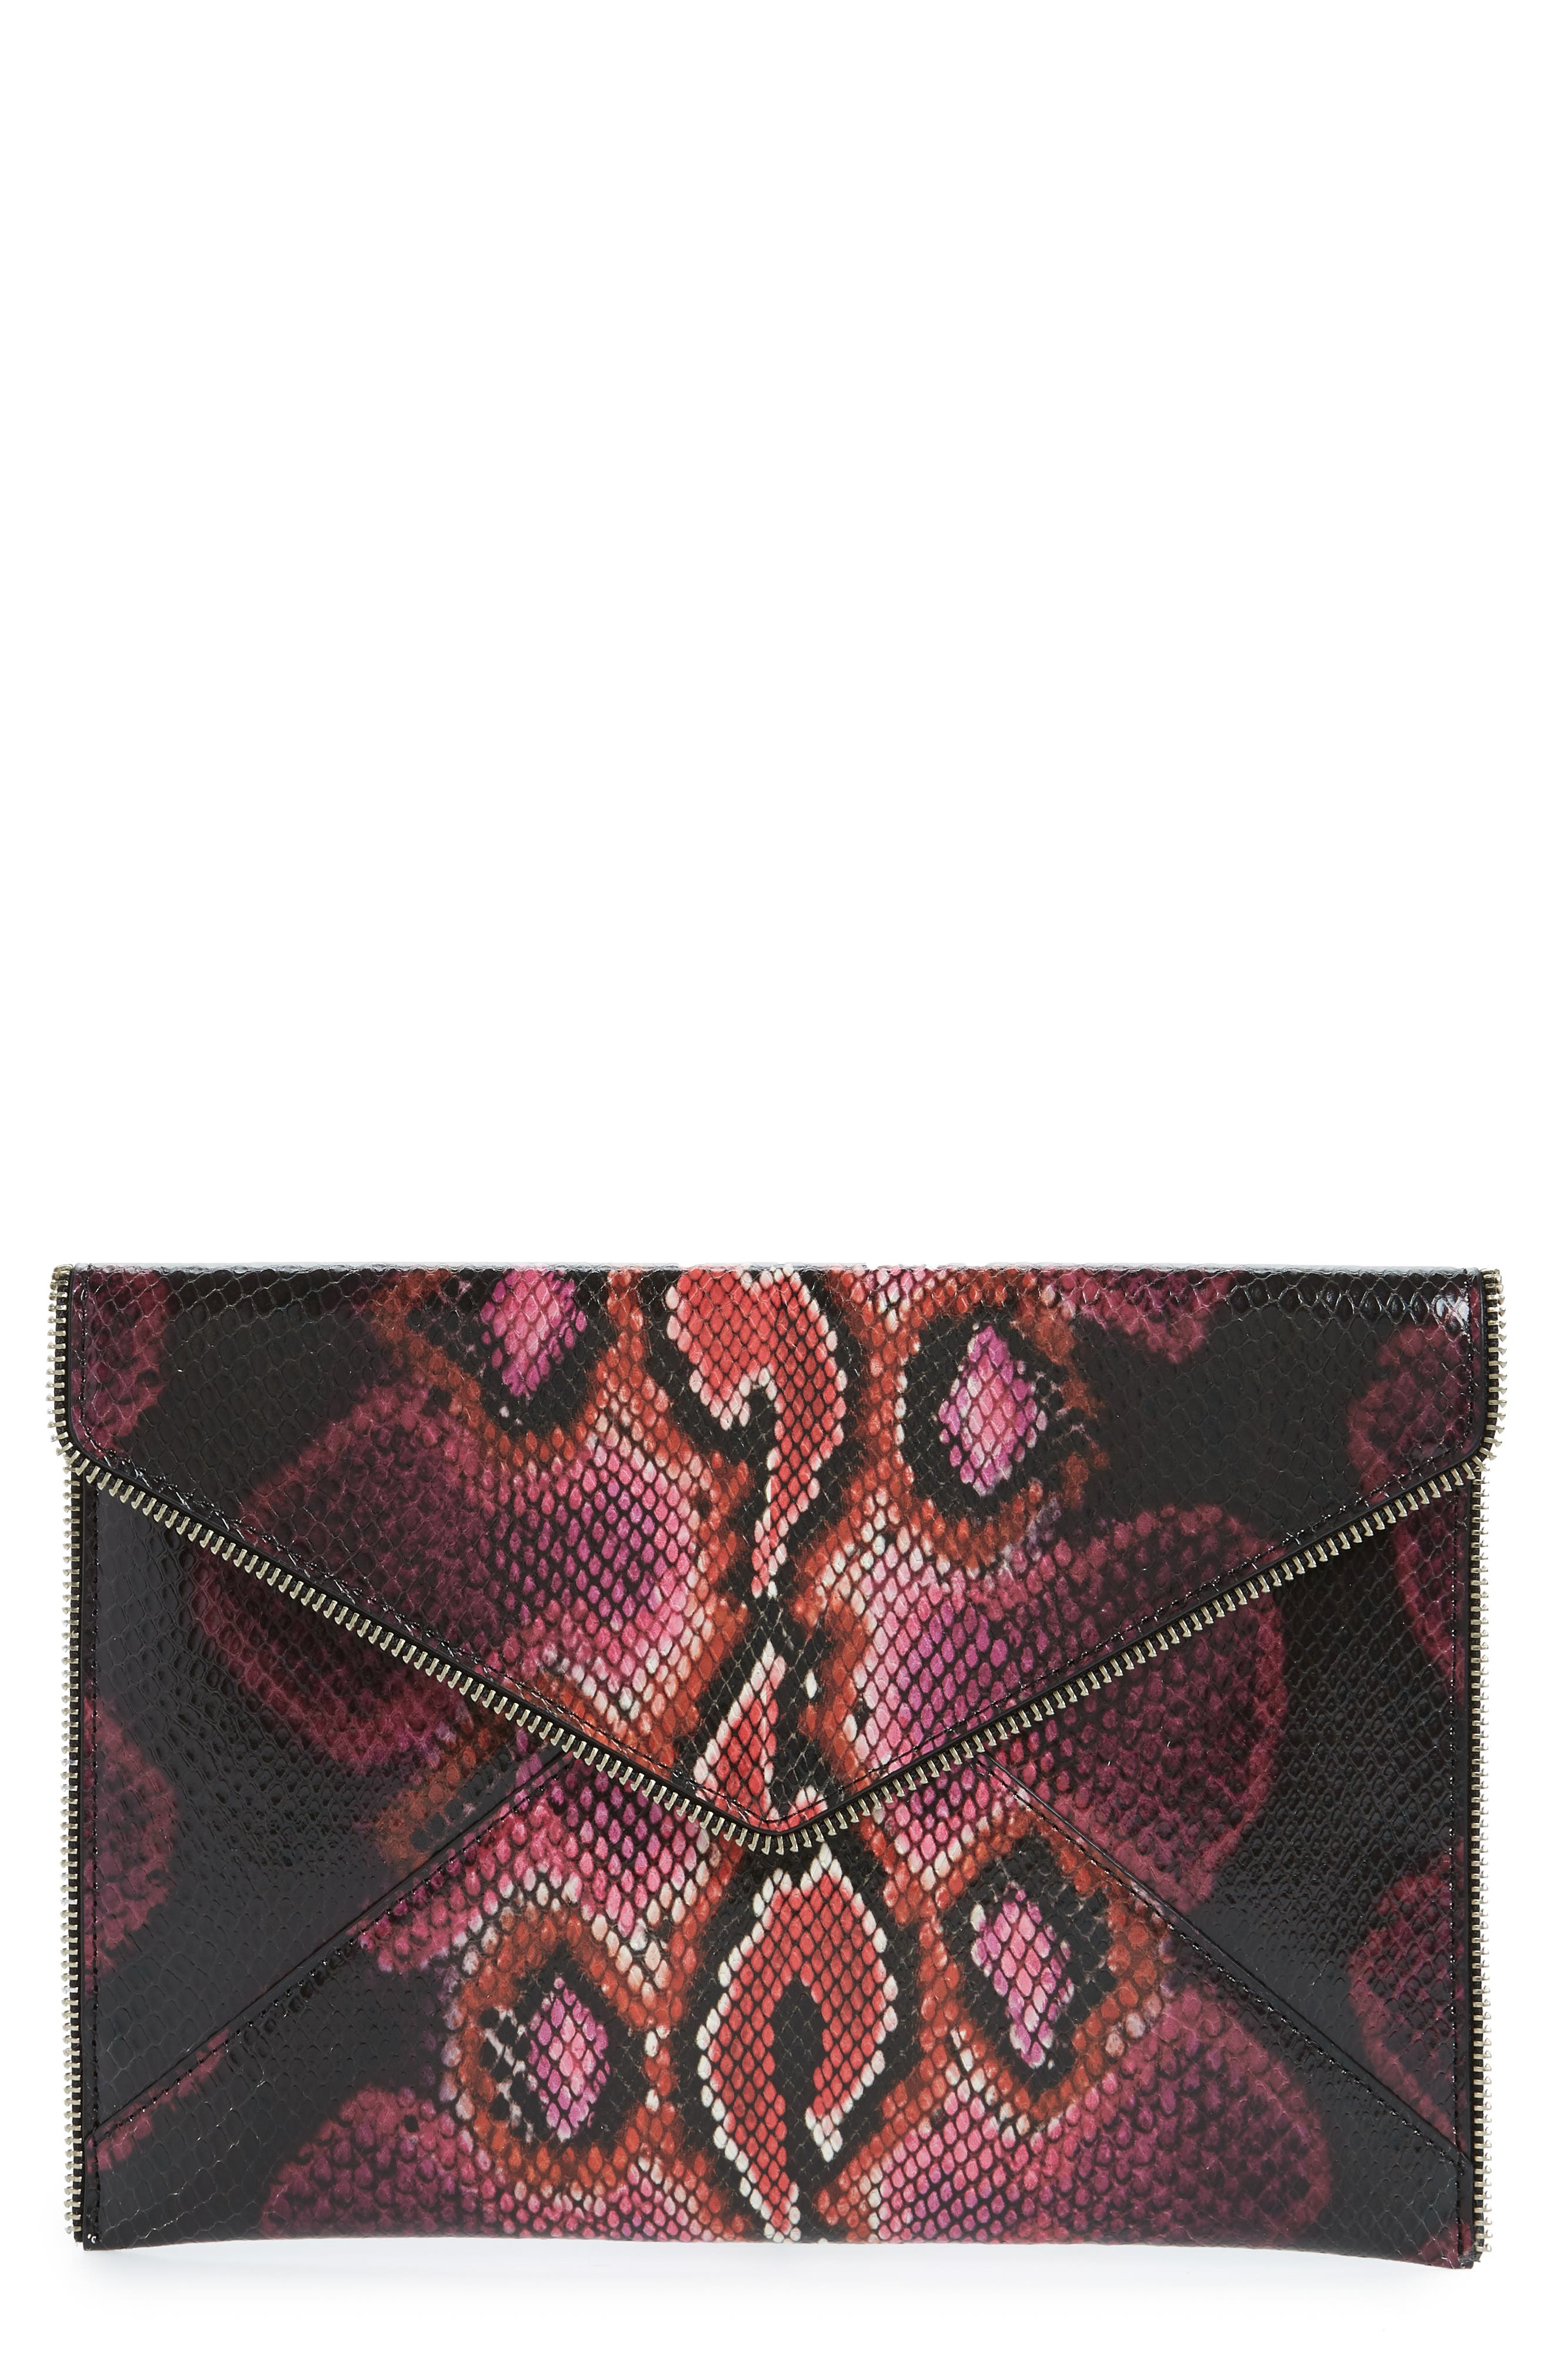 REBECCA MINKOFF Leo Snake Embossed Leather Clutch, Main, color, PINK MULTI